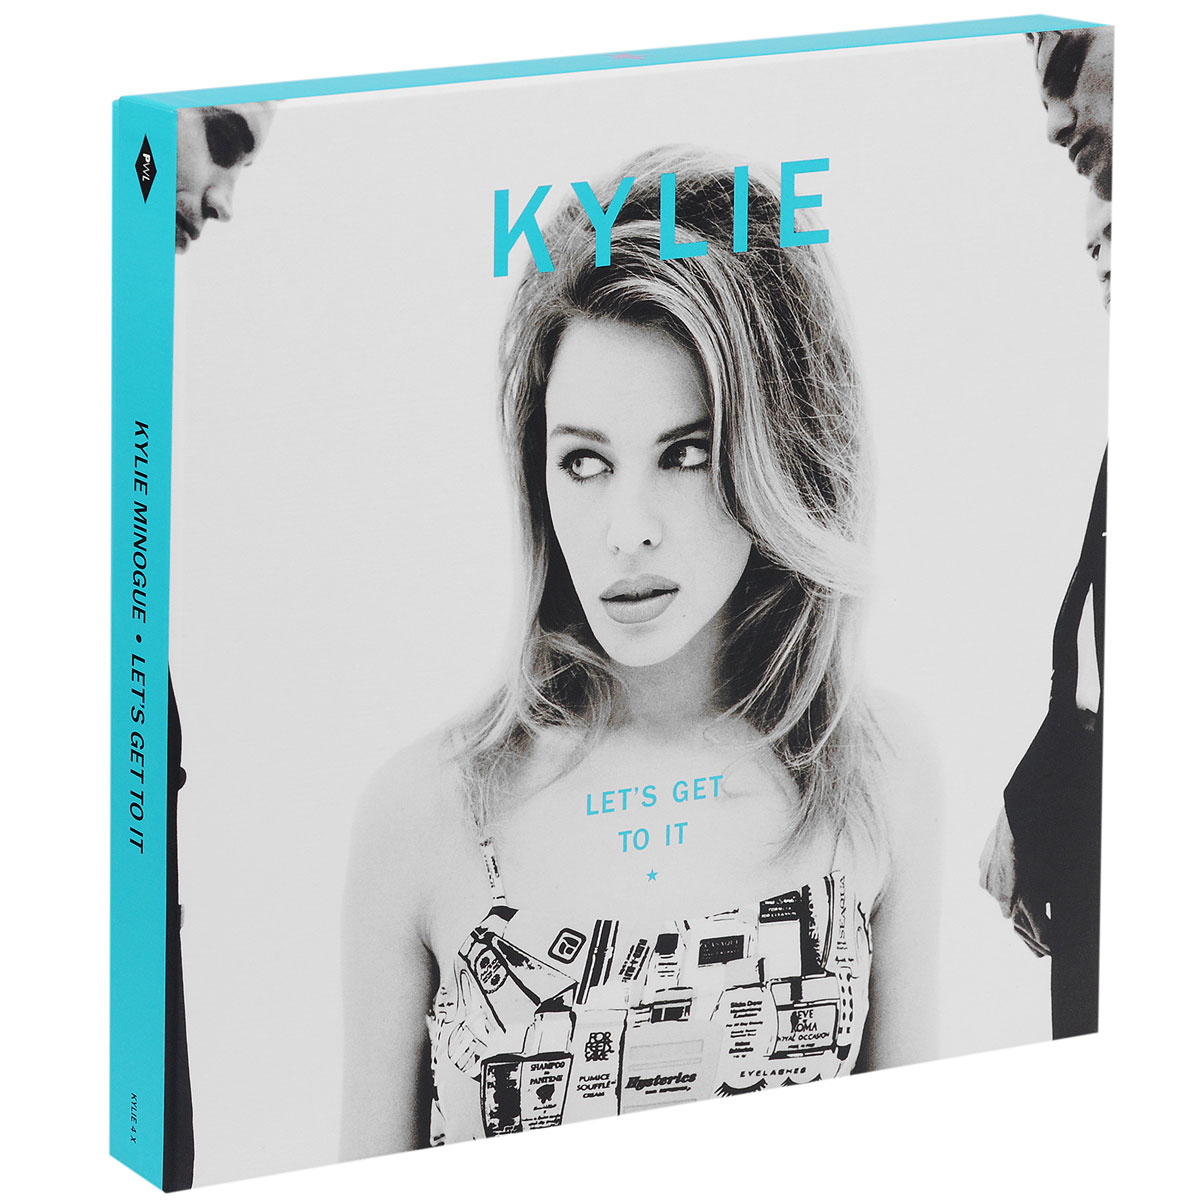 Кайли Миноуг Kylie Minogue. Let's Get To It (2 CD + DVD + LP) partners lp cd